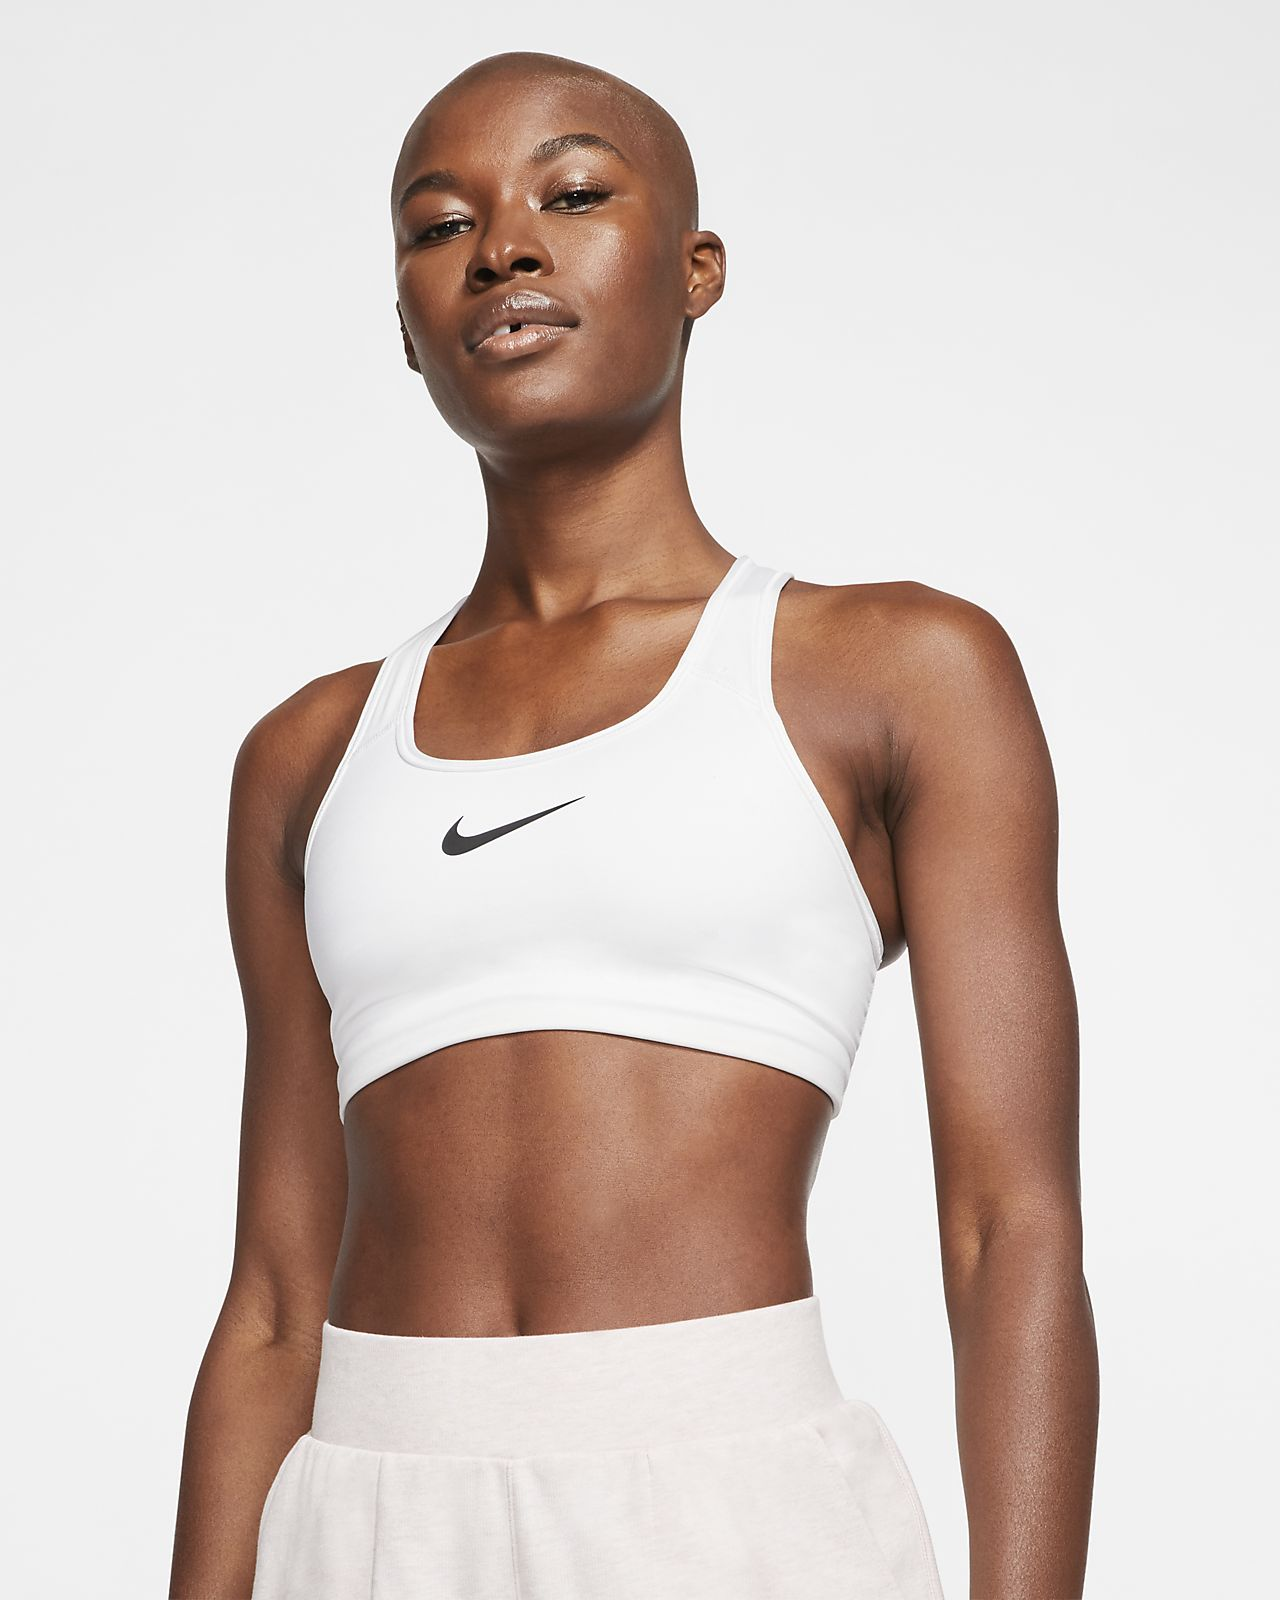 cd1725cc93 Nike Women s Swoosh Medium Support Sports Bra. Nike.com